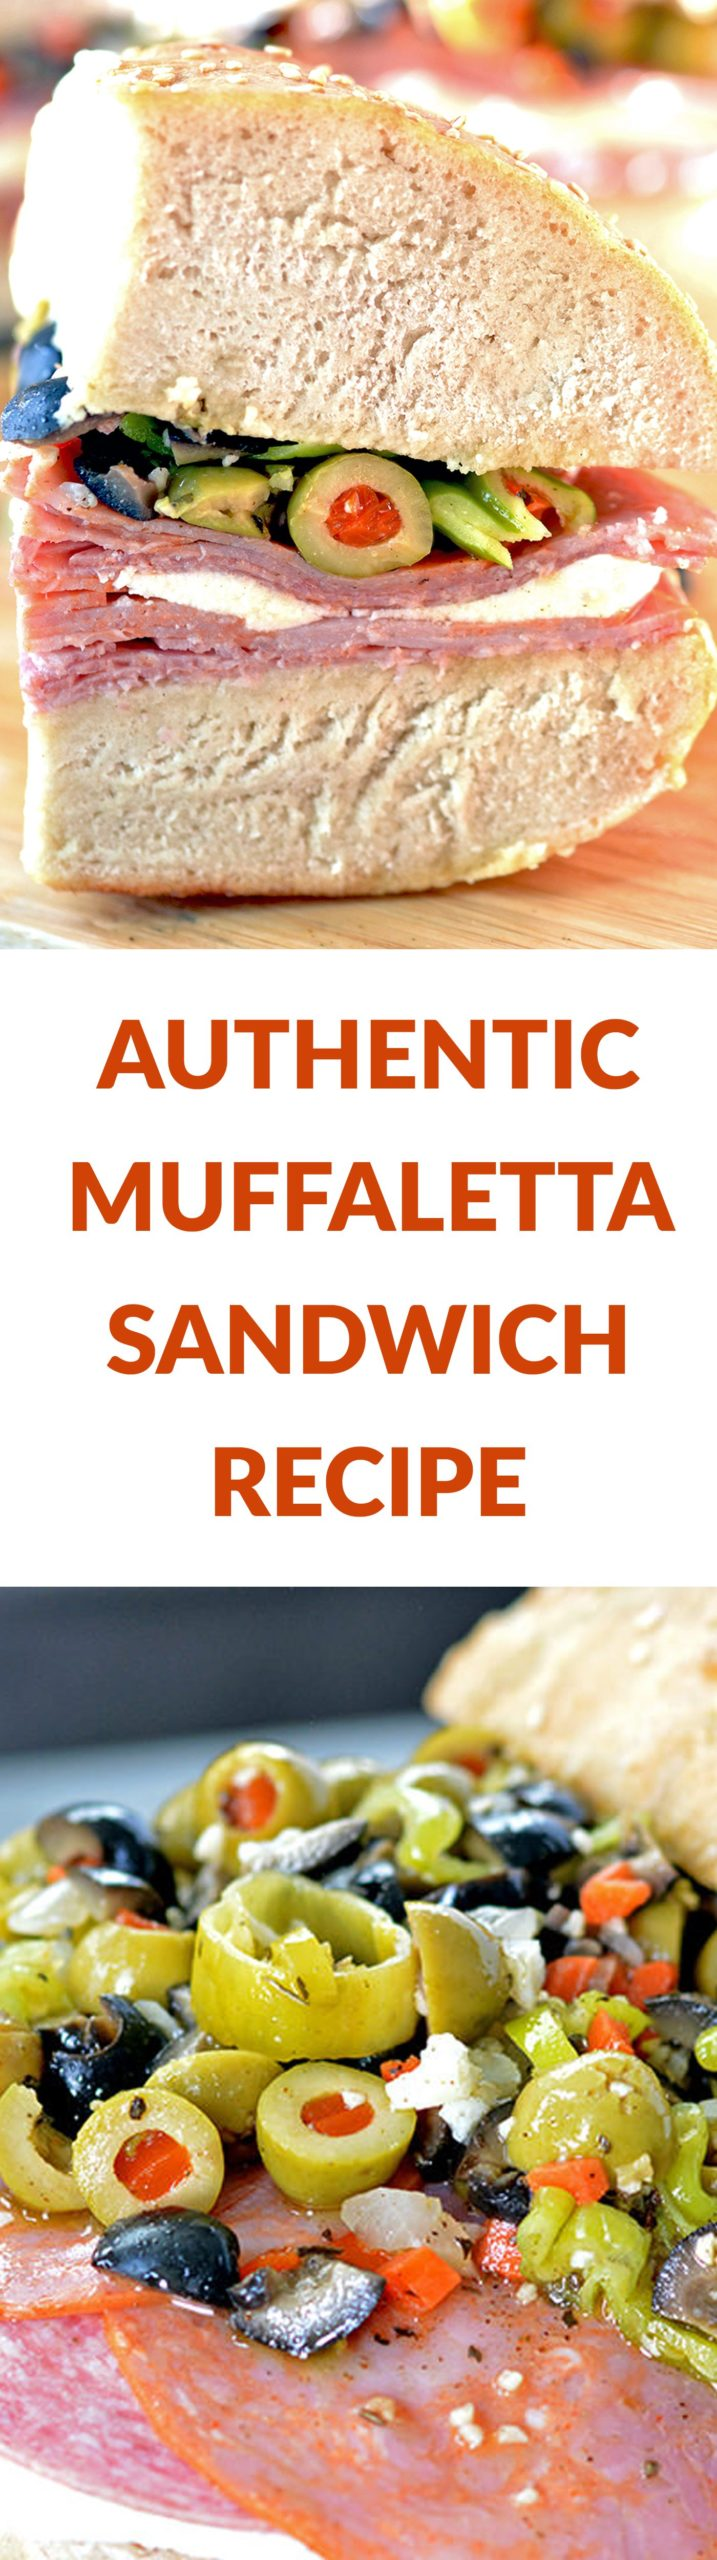 Authentic Muffaletta Sandwich Recipe featuring homemade bread and olive salad! This sandwich recipe is perfect for your Mardi Gras Party! Click for more sandwich recipes: